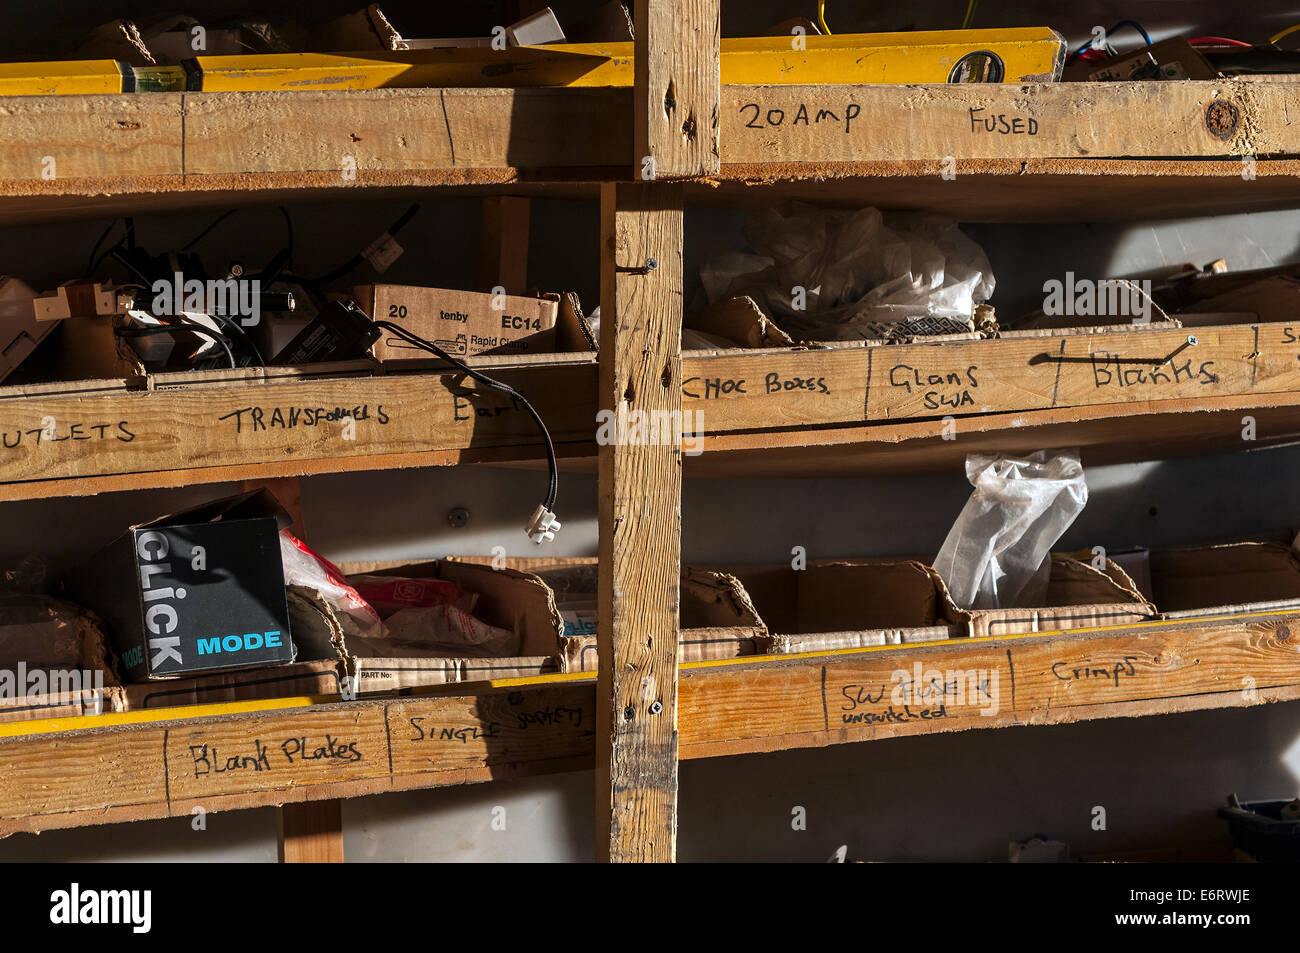 Home Wiring Stockfotos & Home Wiring Bilder - Alamy